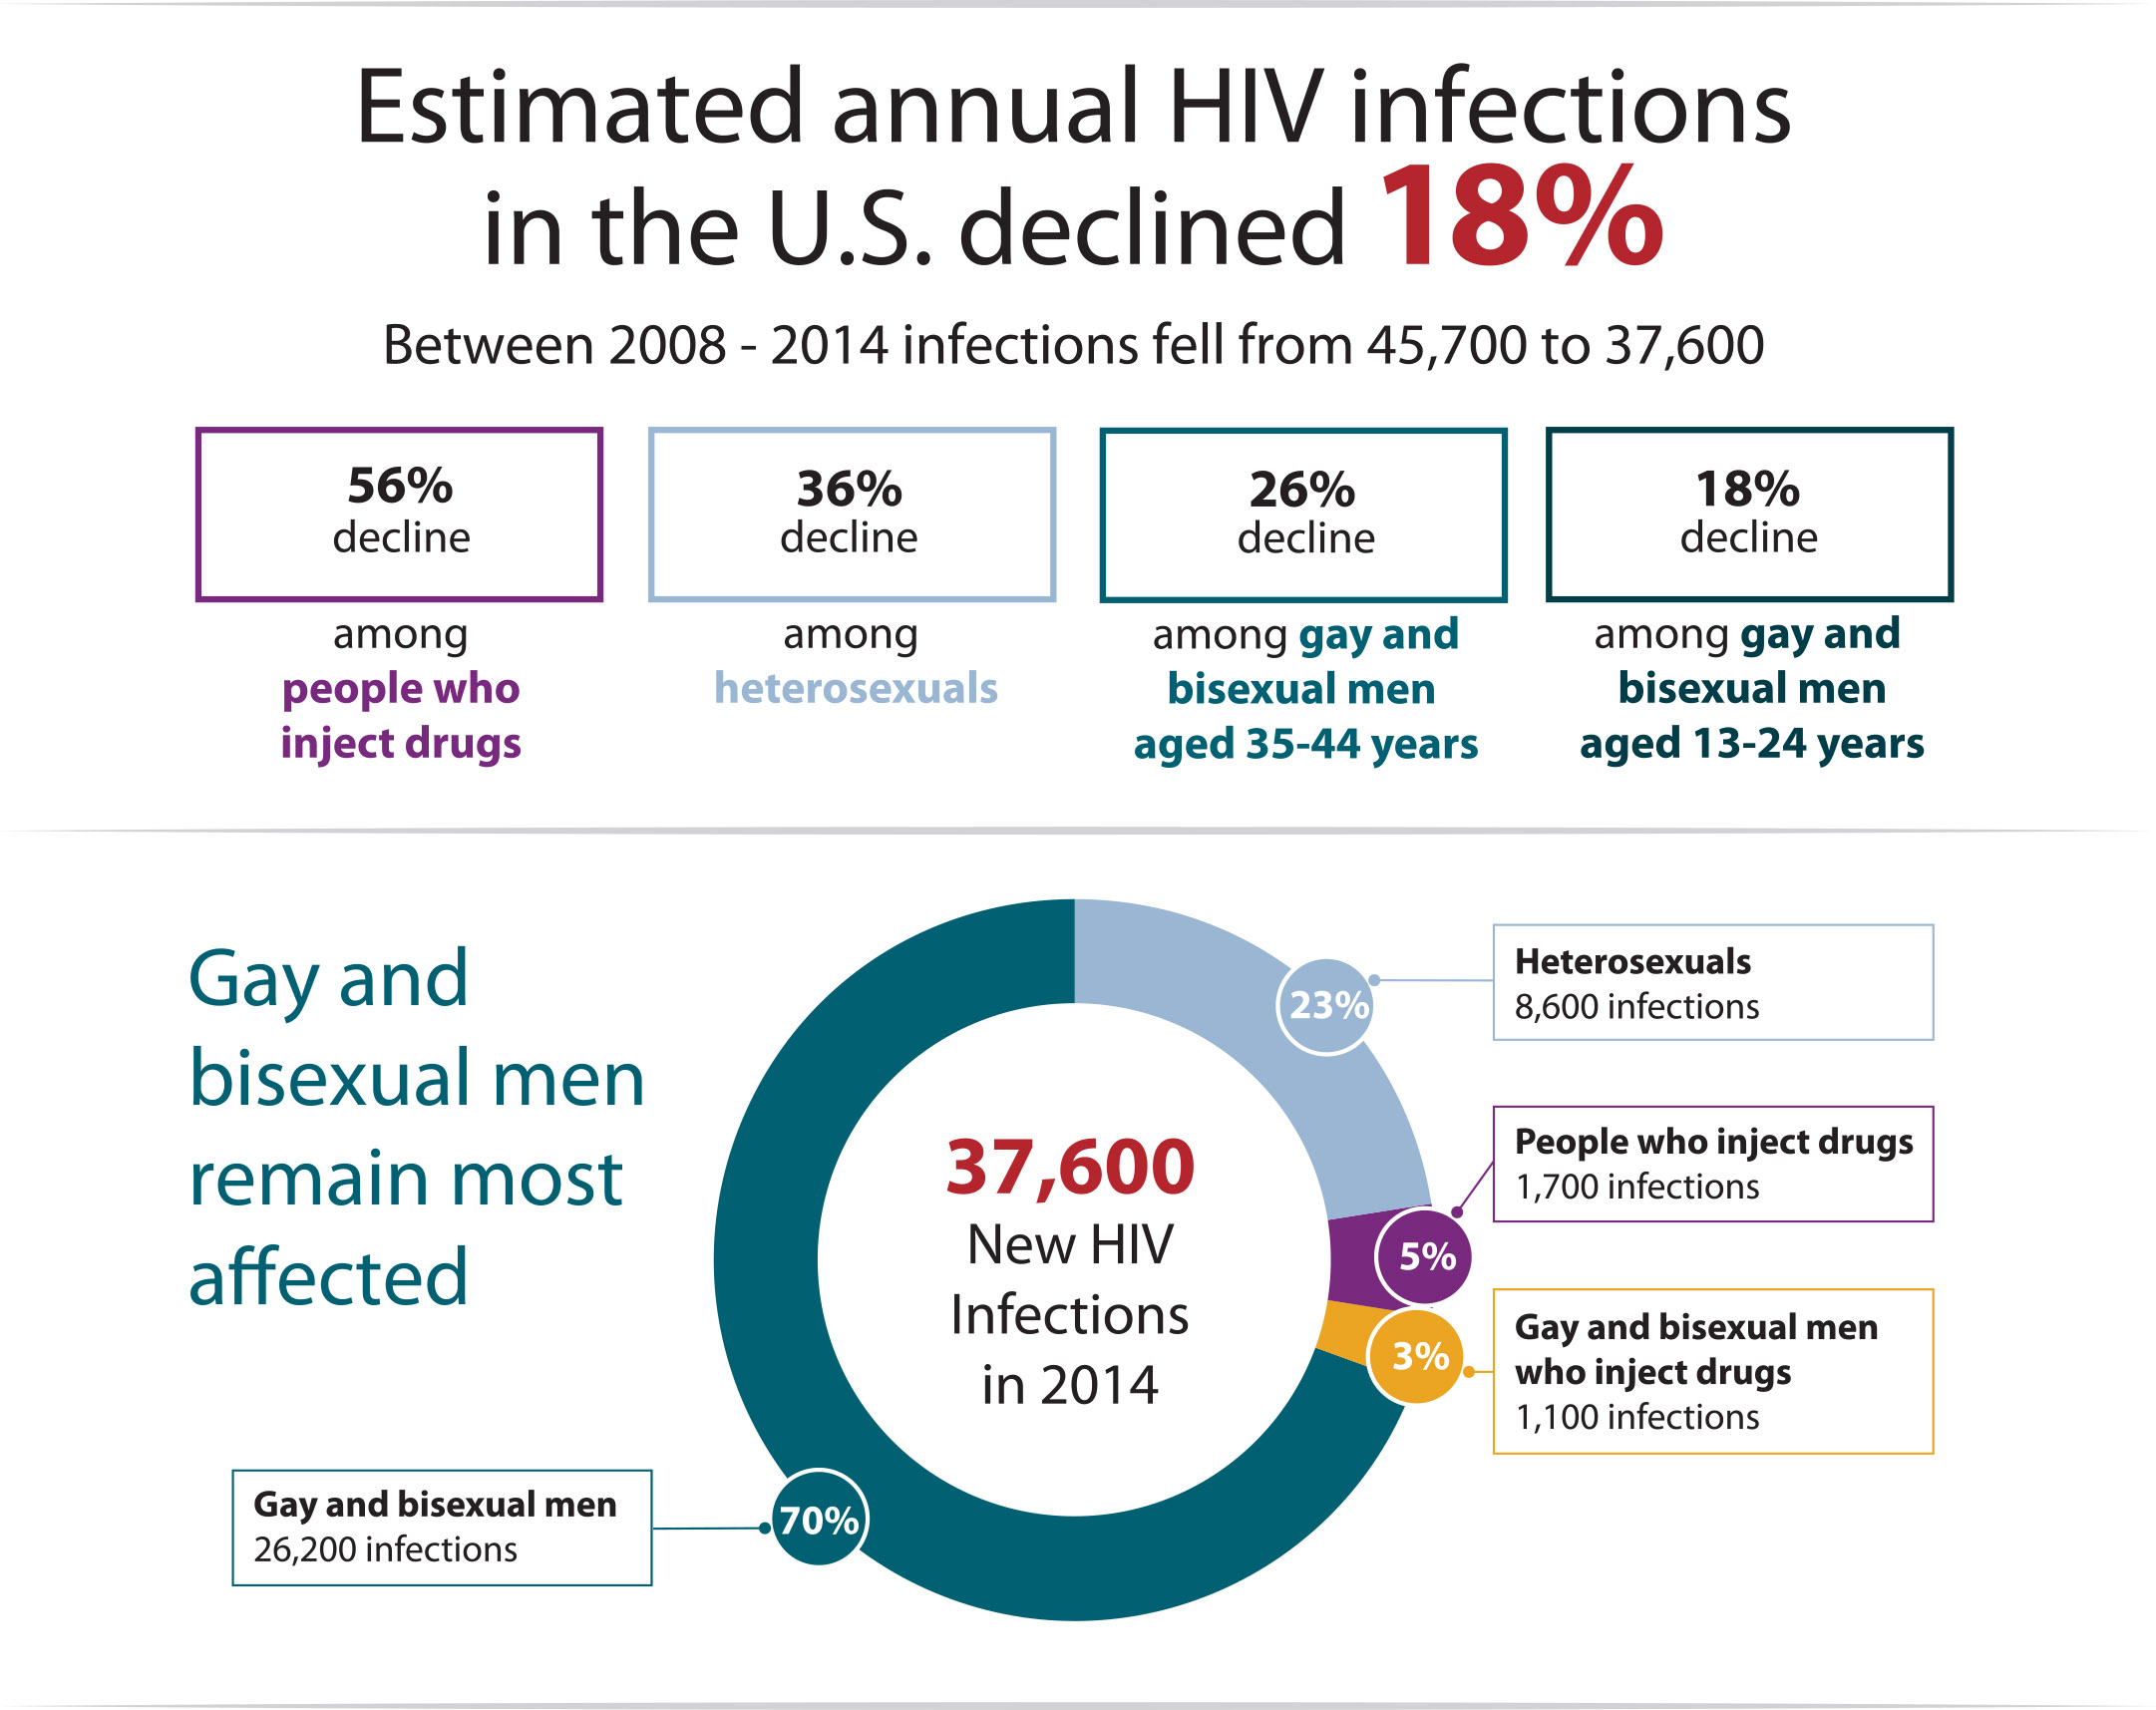 Graphic showing estimated annual HIV infections in the US declined 18% between 2008 and 2014.